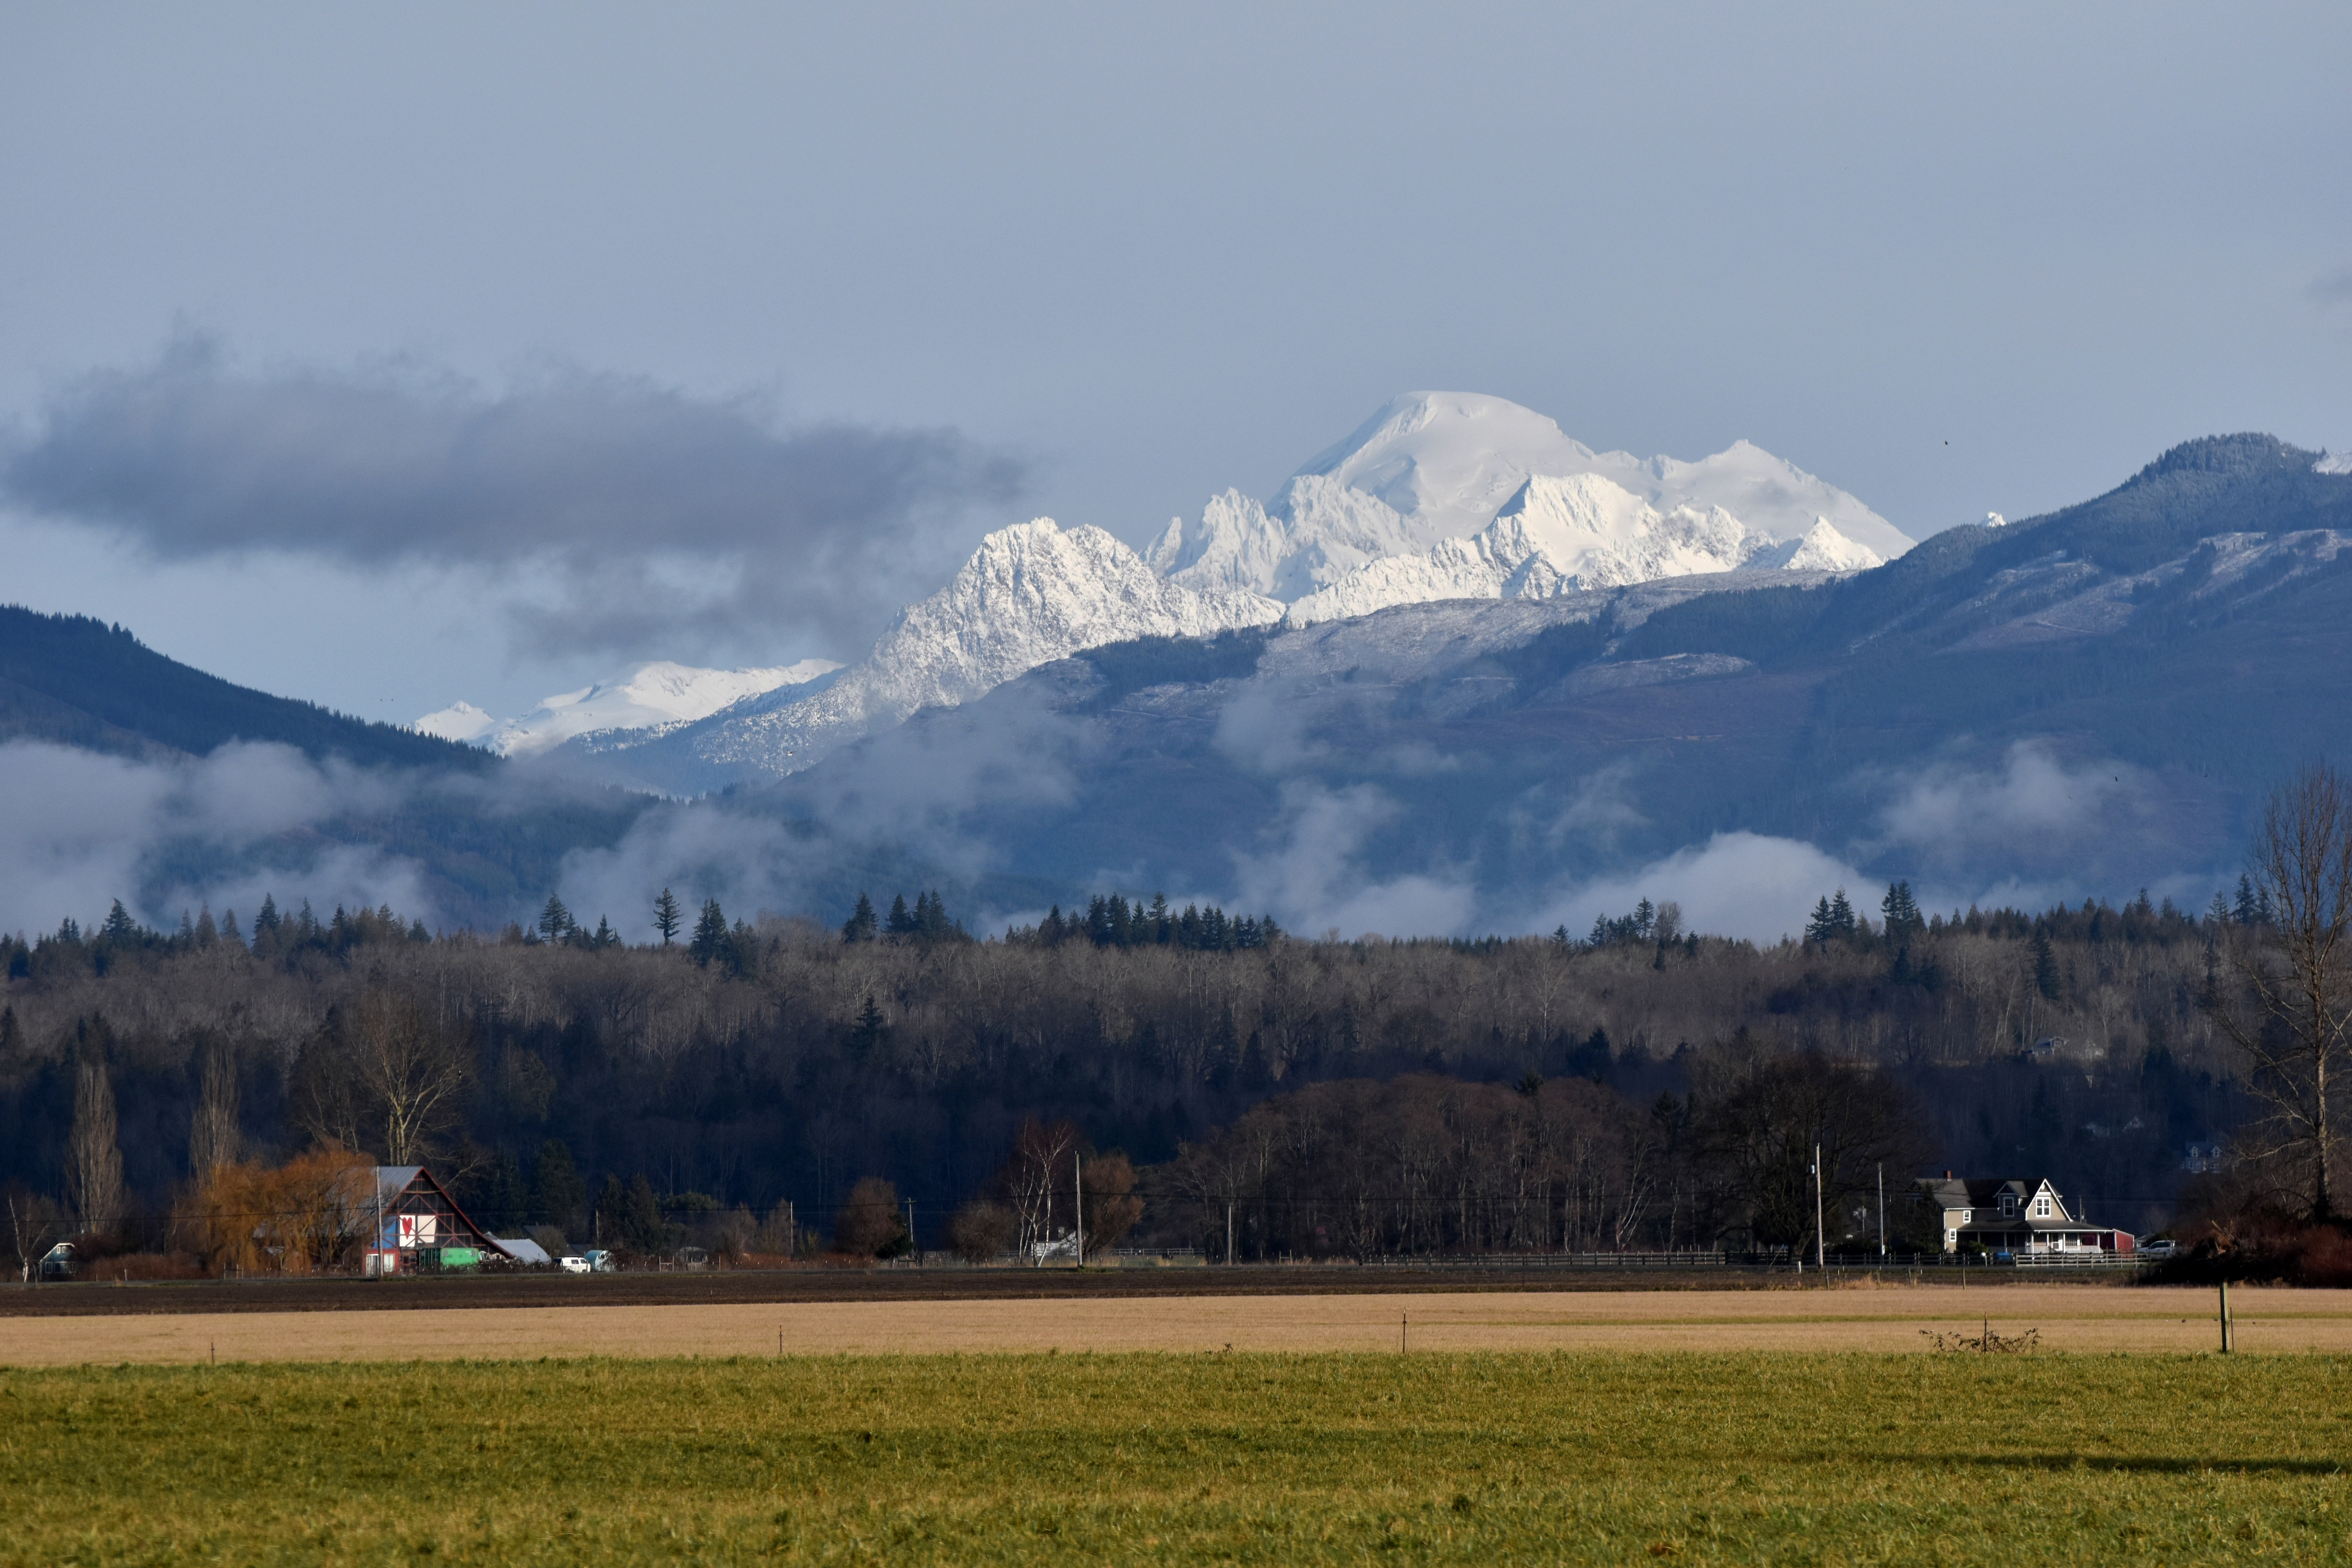 Mount Baker from Bow (photo by Karen Molenaar Terrell)